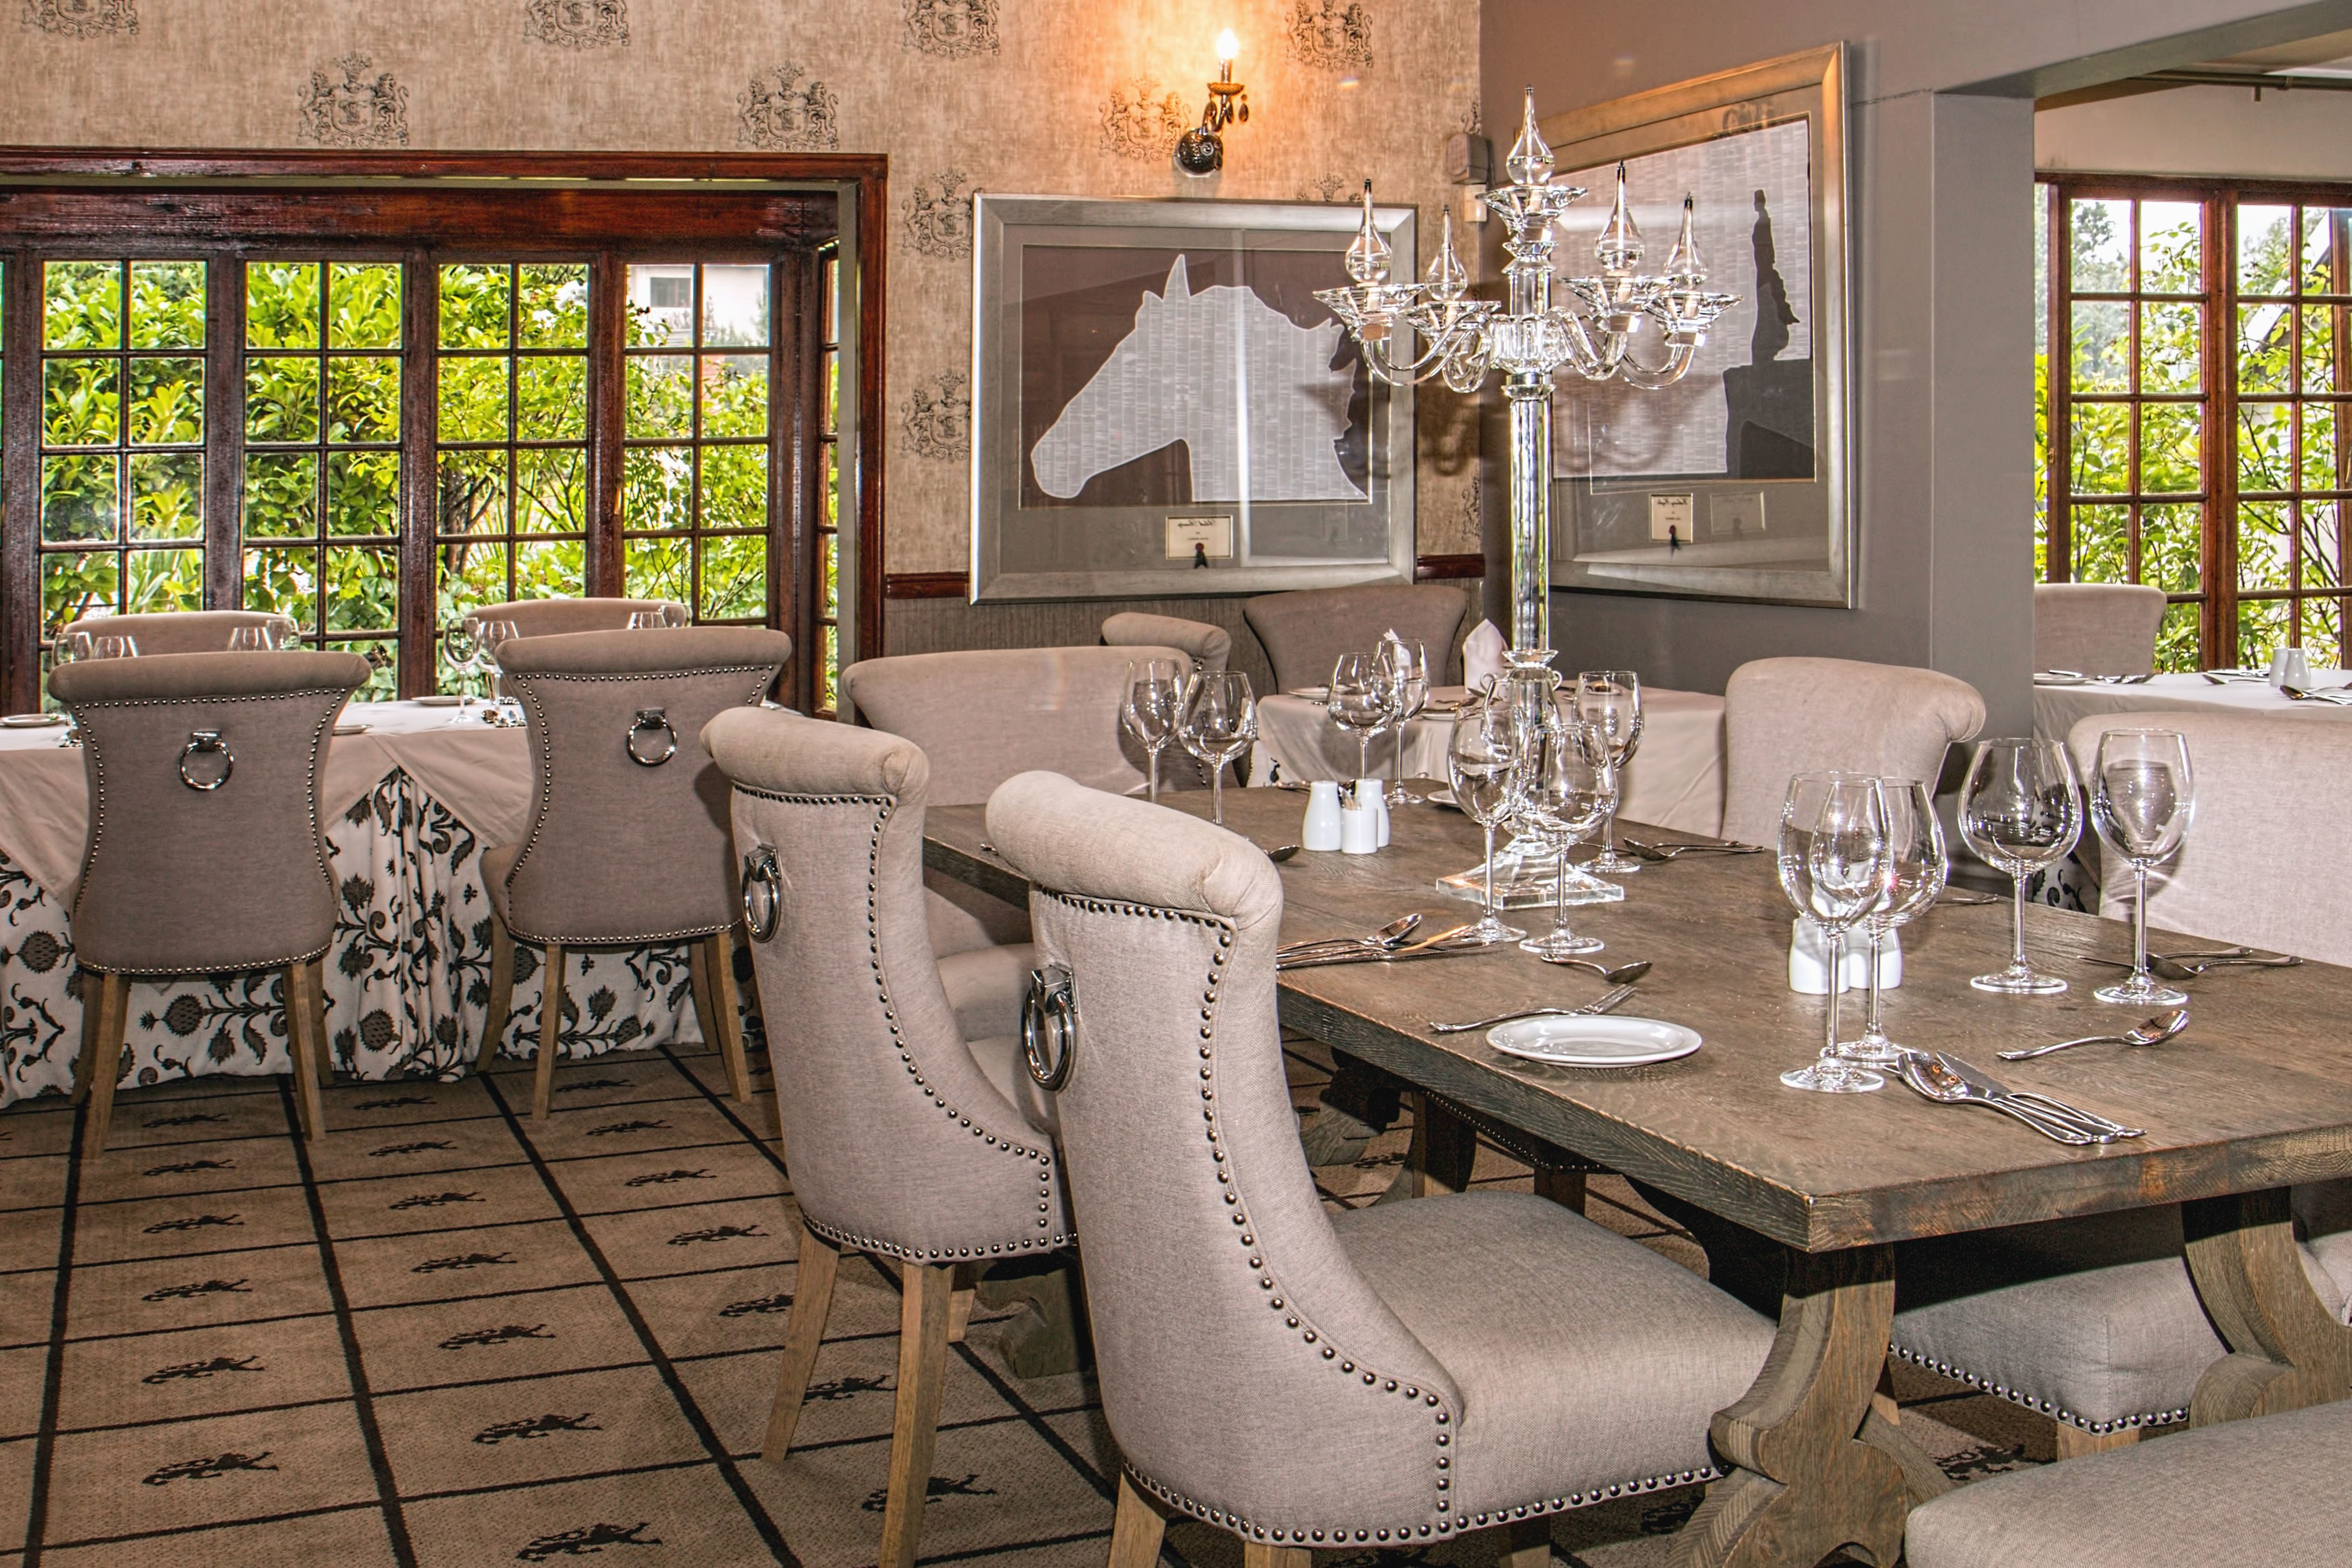 Free Picture Interior Table Chair House Restaurant